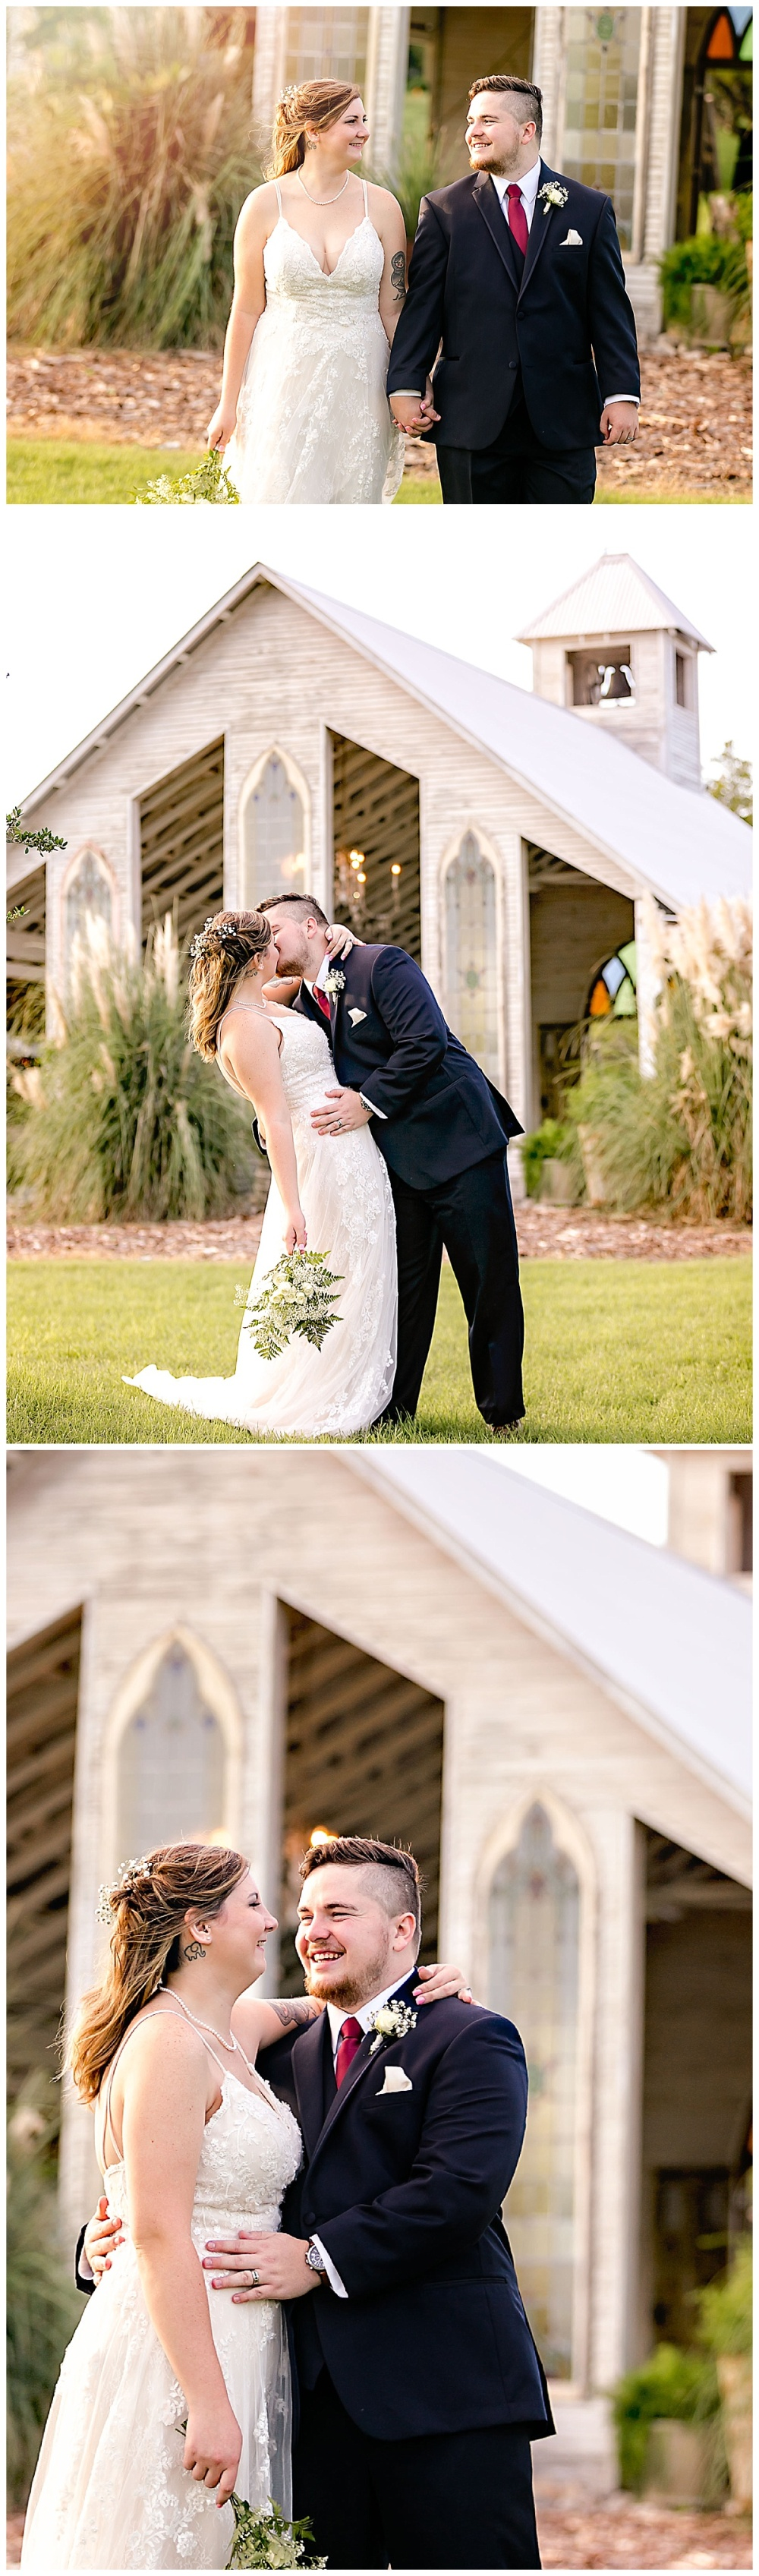 Texas-Wedding-Photographer-Gruene-Estate-Open-Air-Chapel-Carly-Barton-Photography-Katie-Nic_0061.jpg